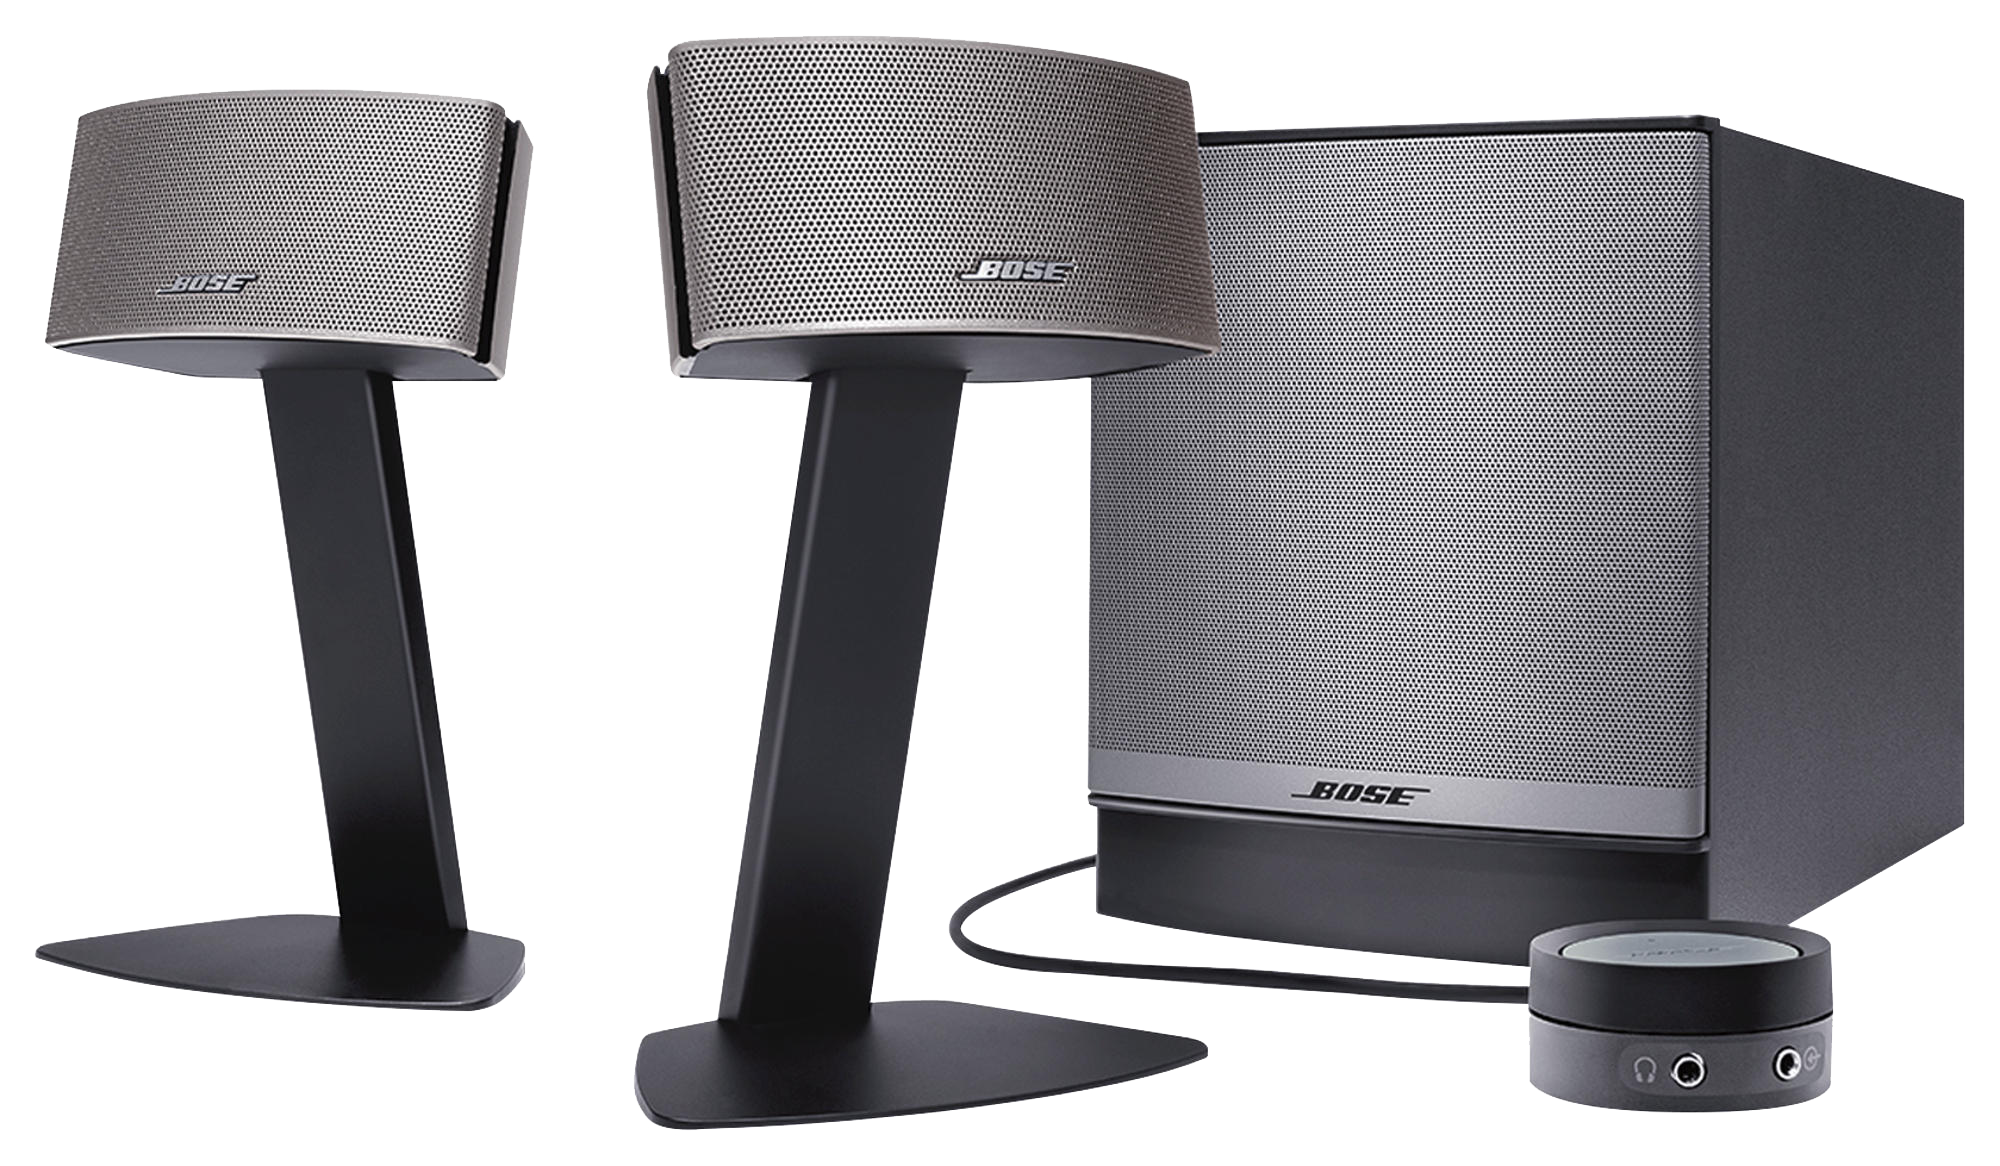 bose companion 50 g nstig kaufen pc lautsprecher media. Black Bedroom Furniture Sets. Home Design Ideas